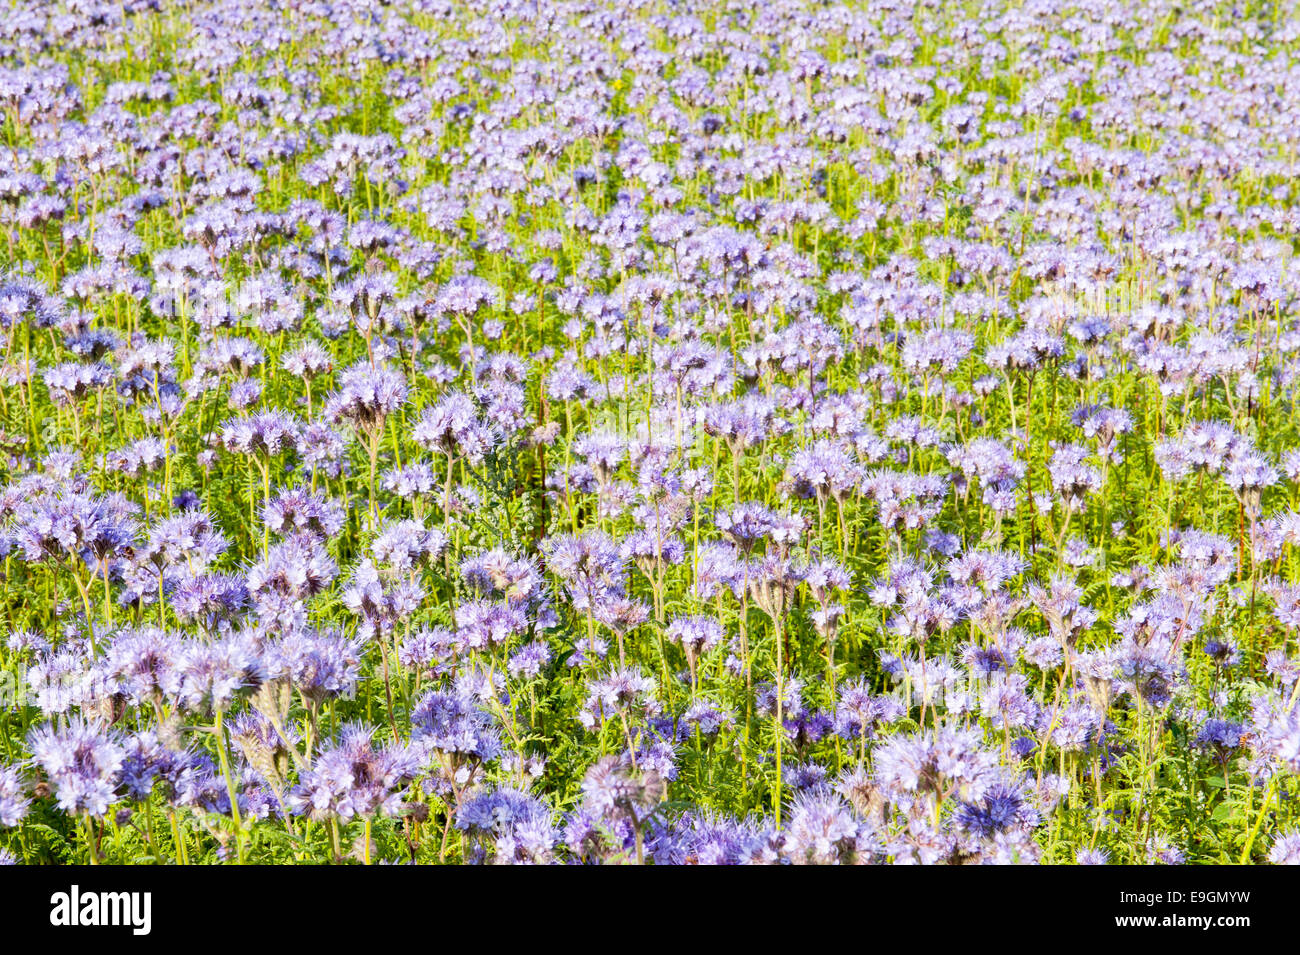 Field of lila wildflowers in green flowerbed for honey bees Stock Photo